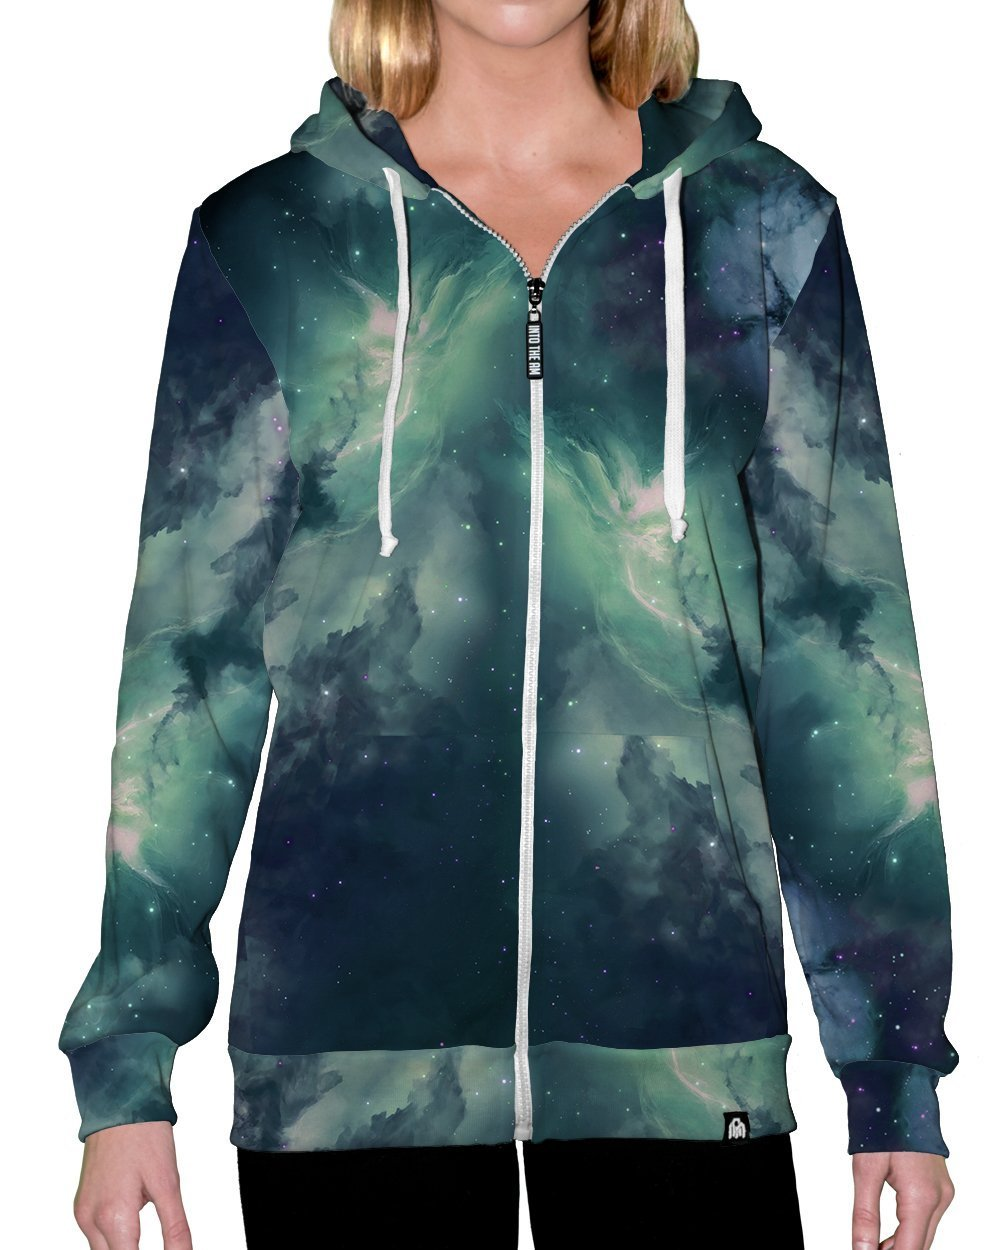 Cold Galaxy Zip-Up Hoodie